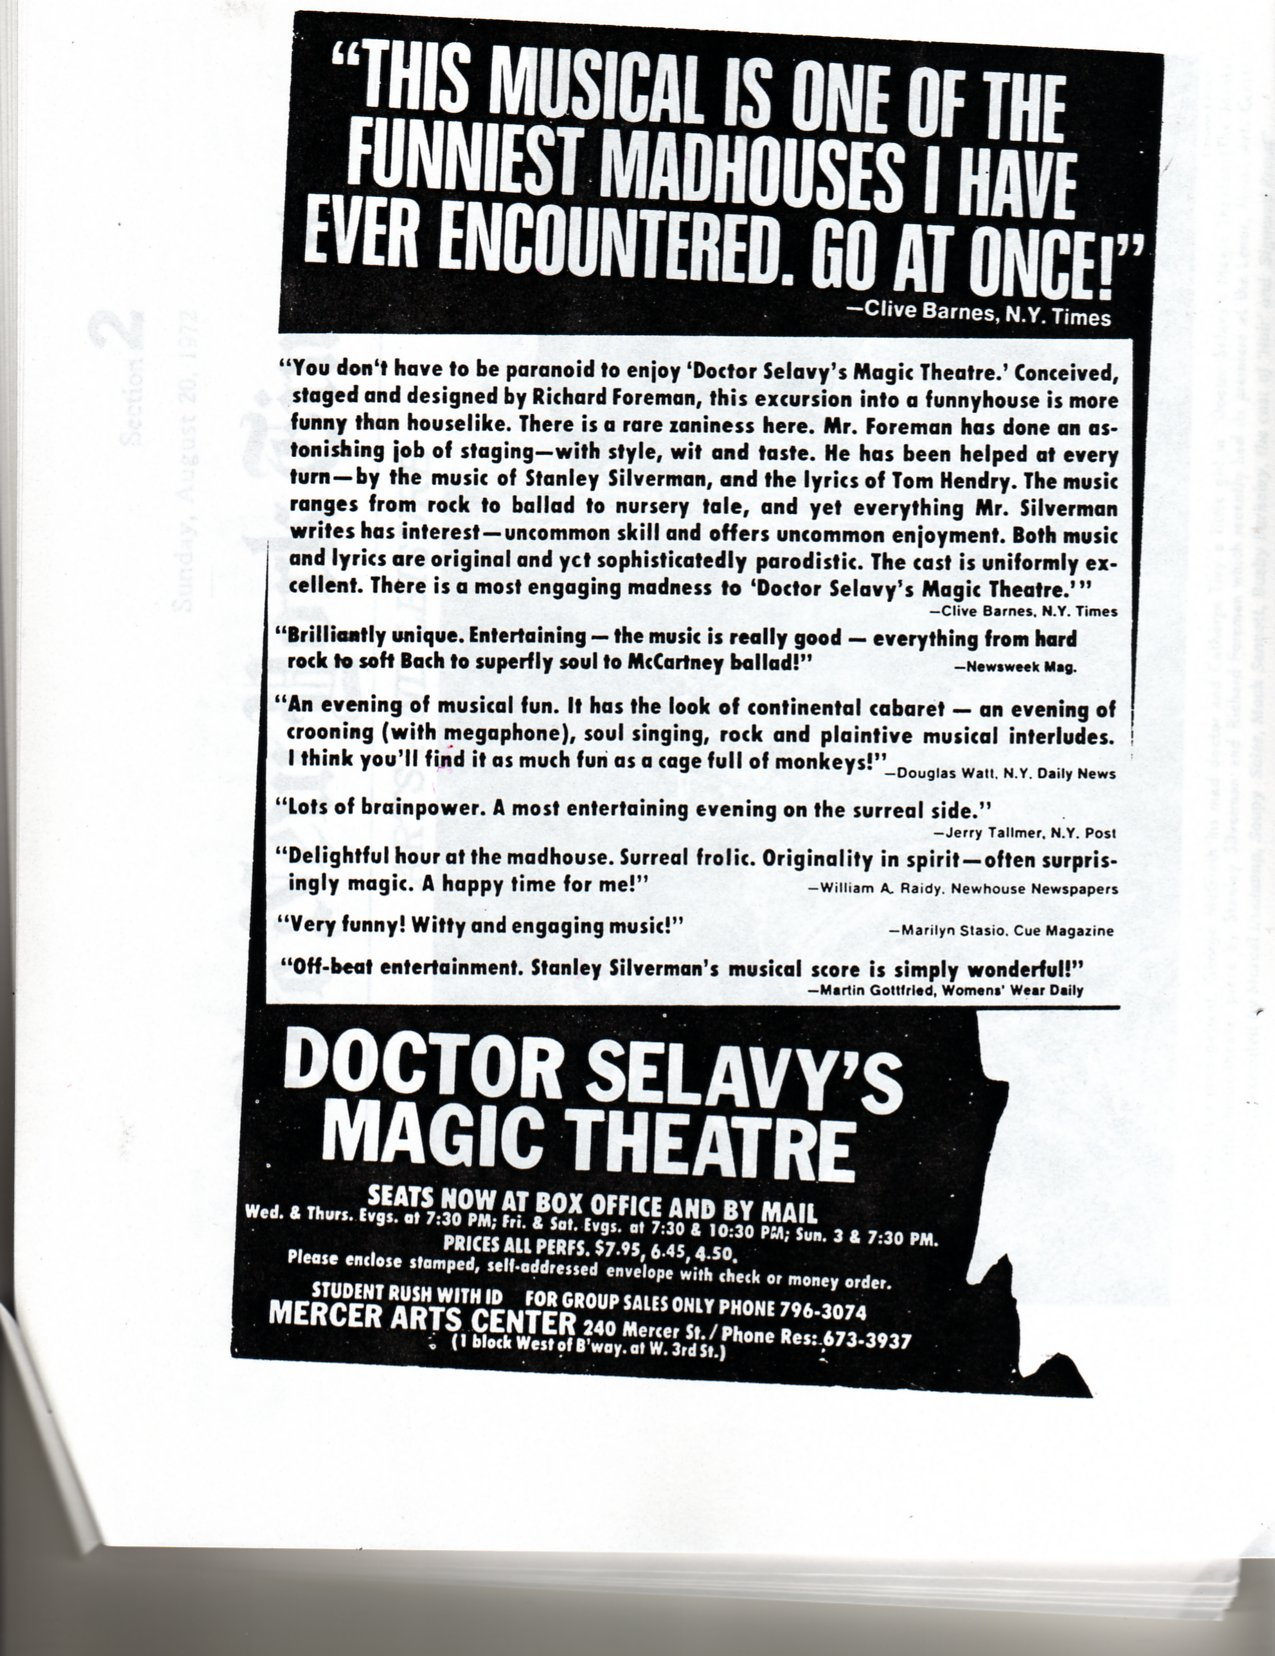 Dr. Selavy's Magic Theatre Program